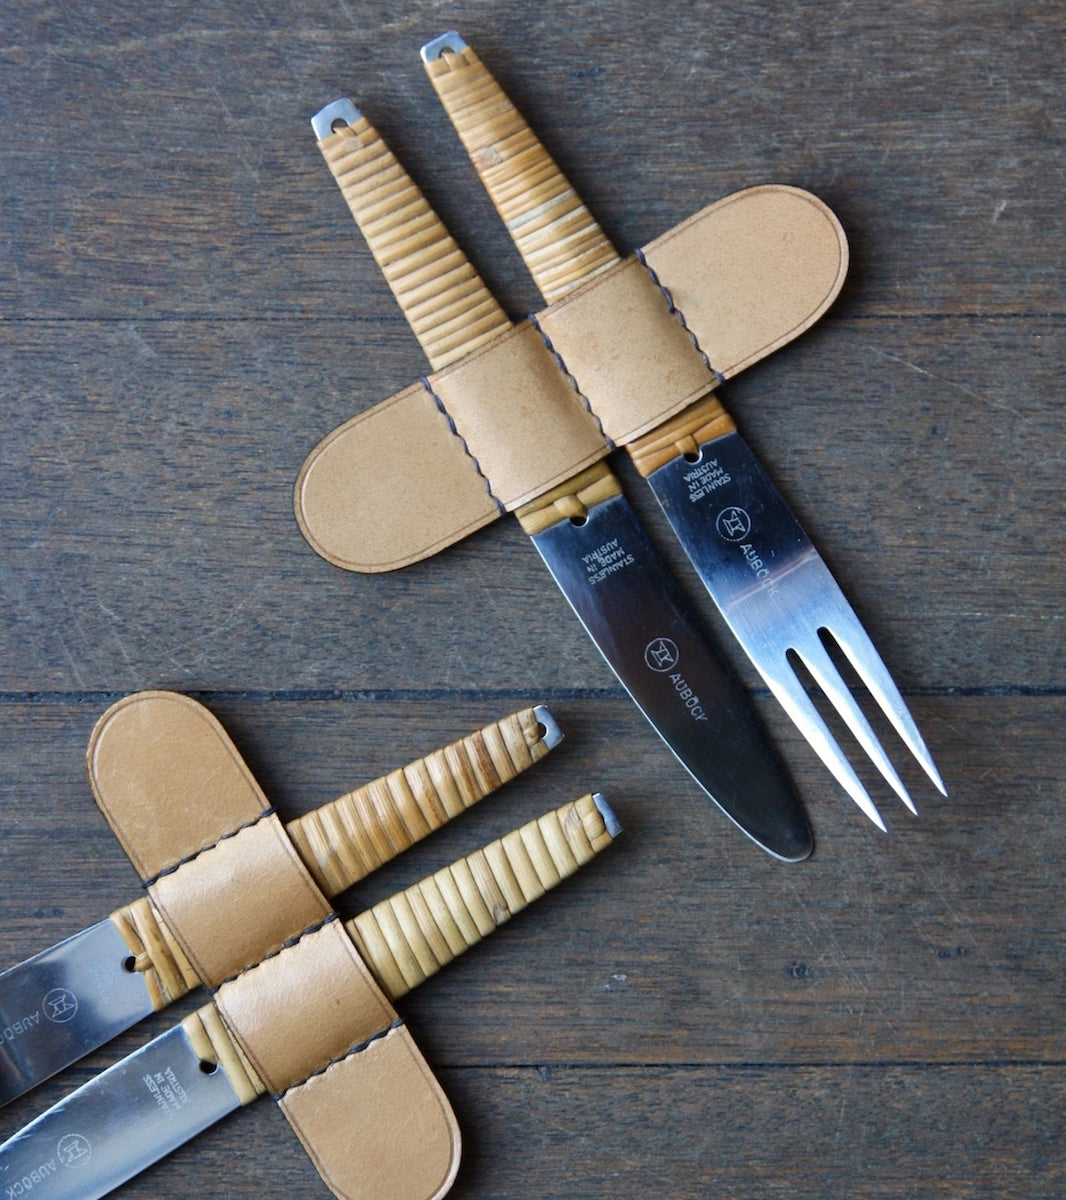 Two Sets of Mid-20th Century Craftsmanship Knives & Forks, Carl Auböck